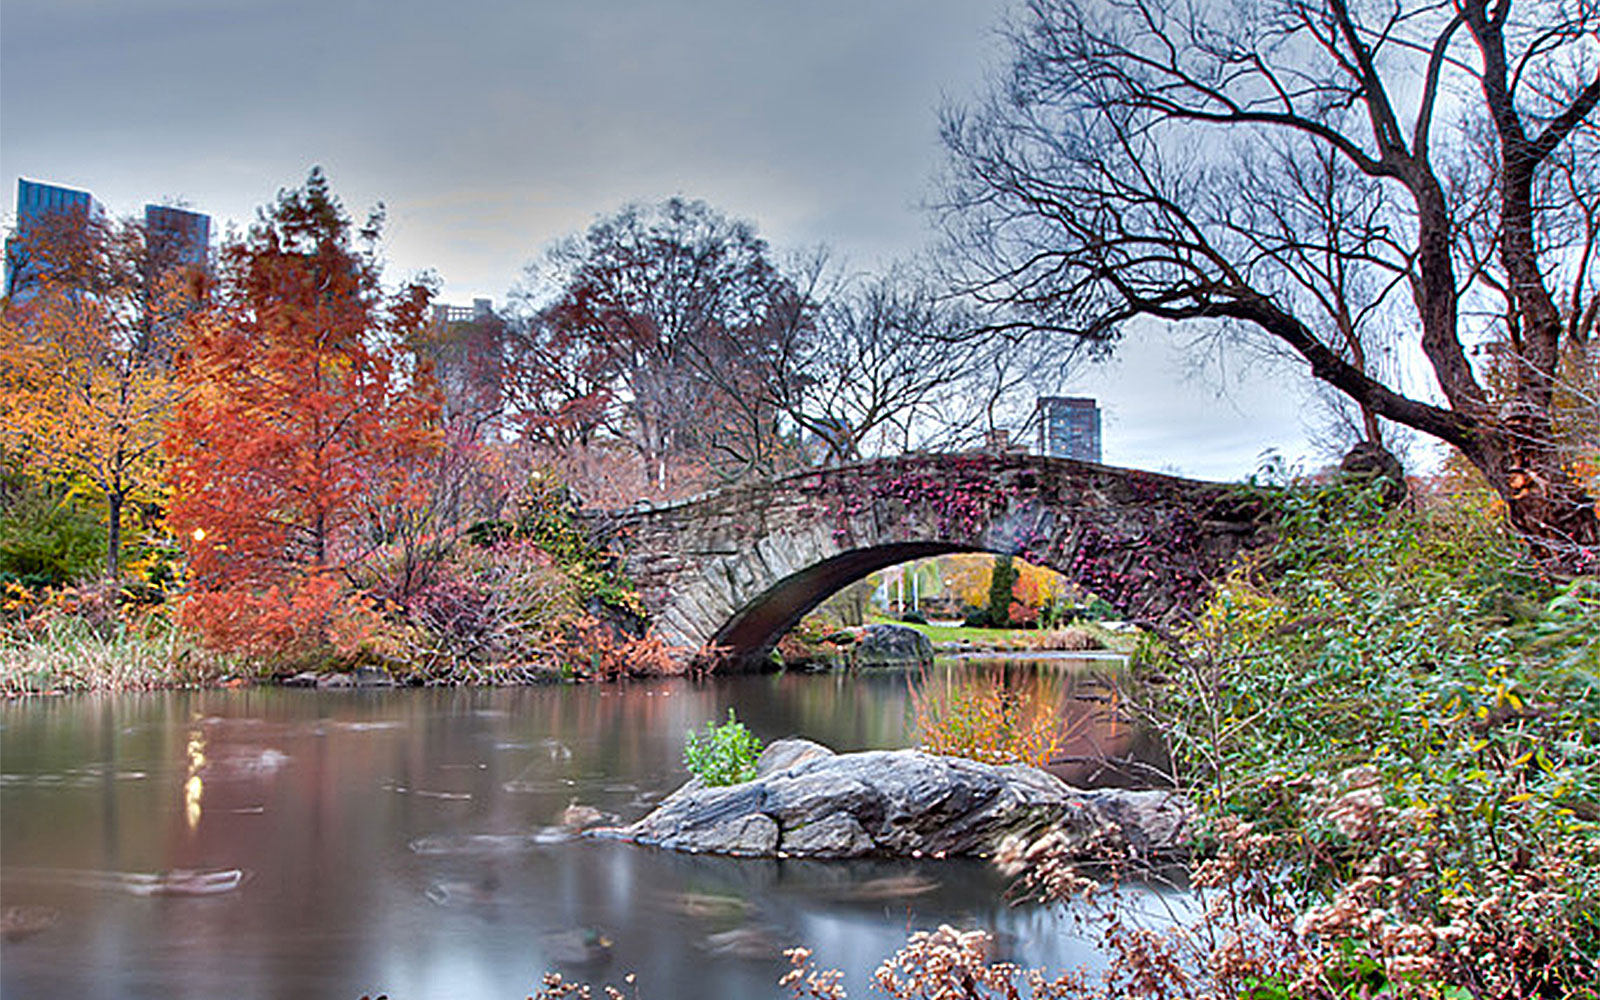 Best Parks in NYC: Central Park